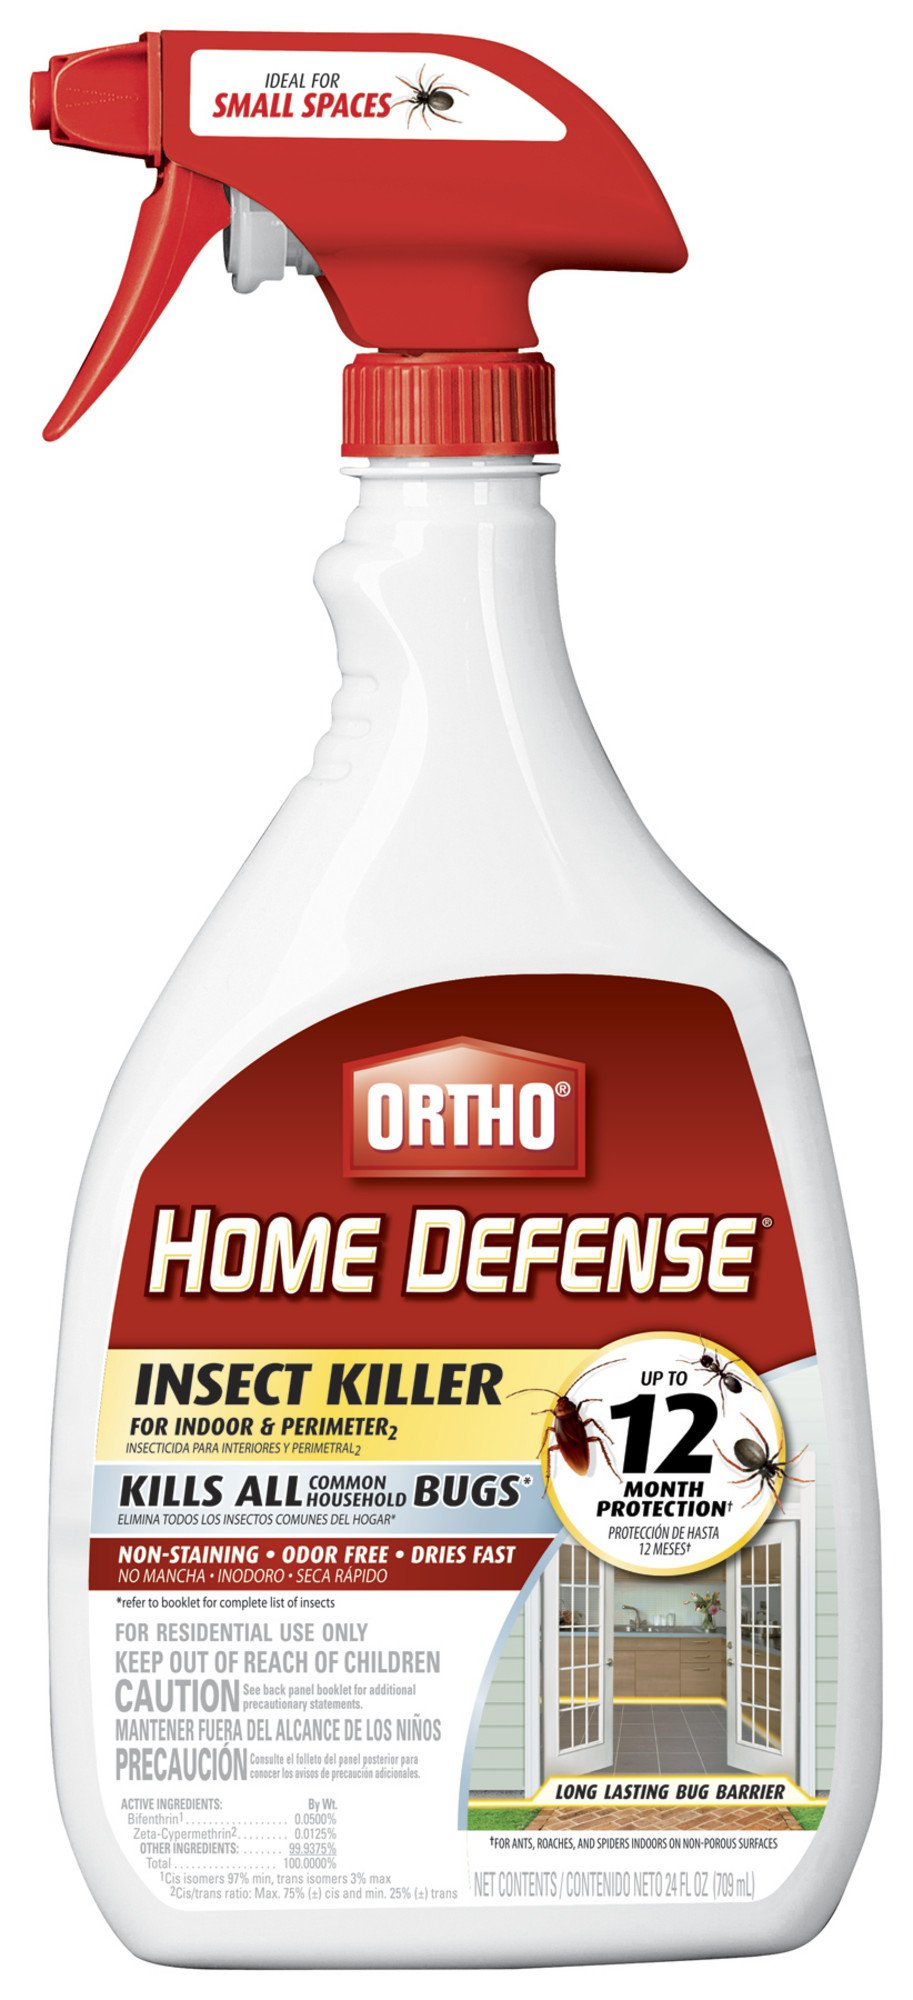 Ortho 0221310 Home Defense MAX Insect Killer for Indoor and Perimeter RTU Trigger